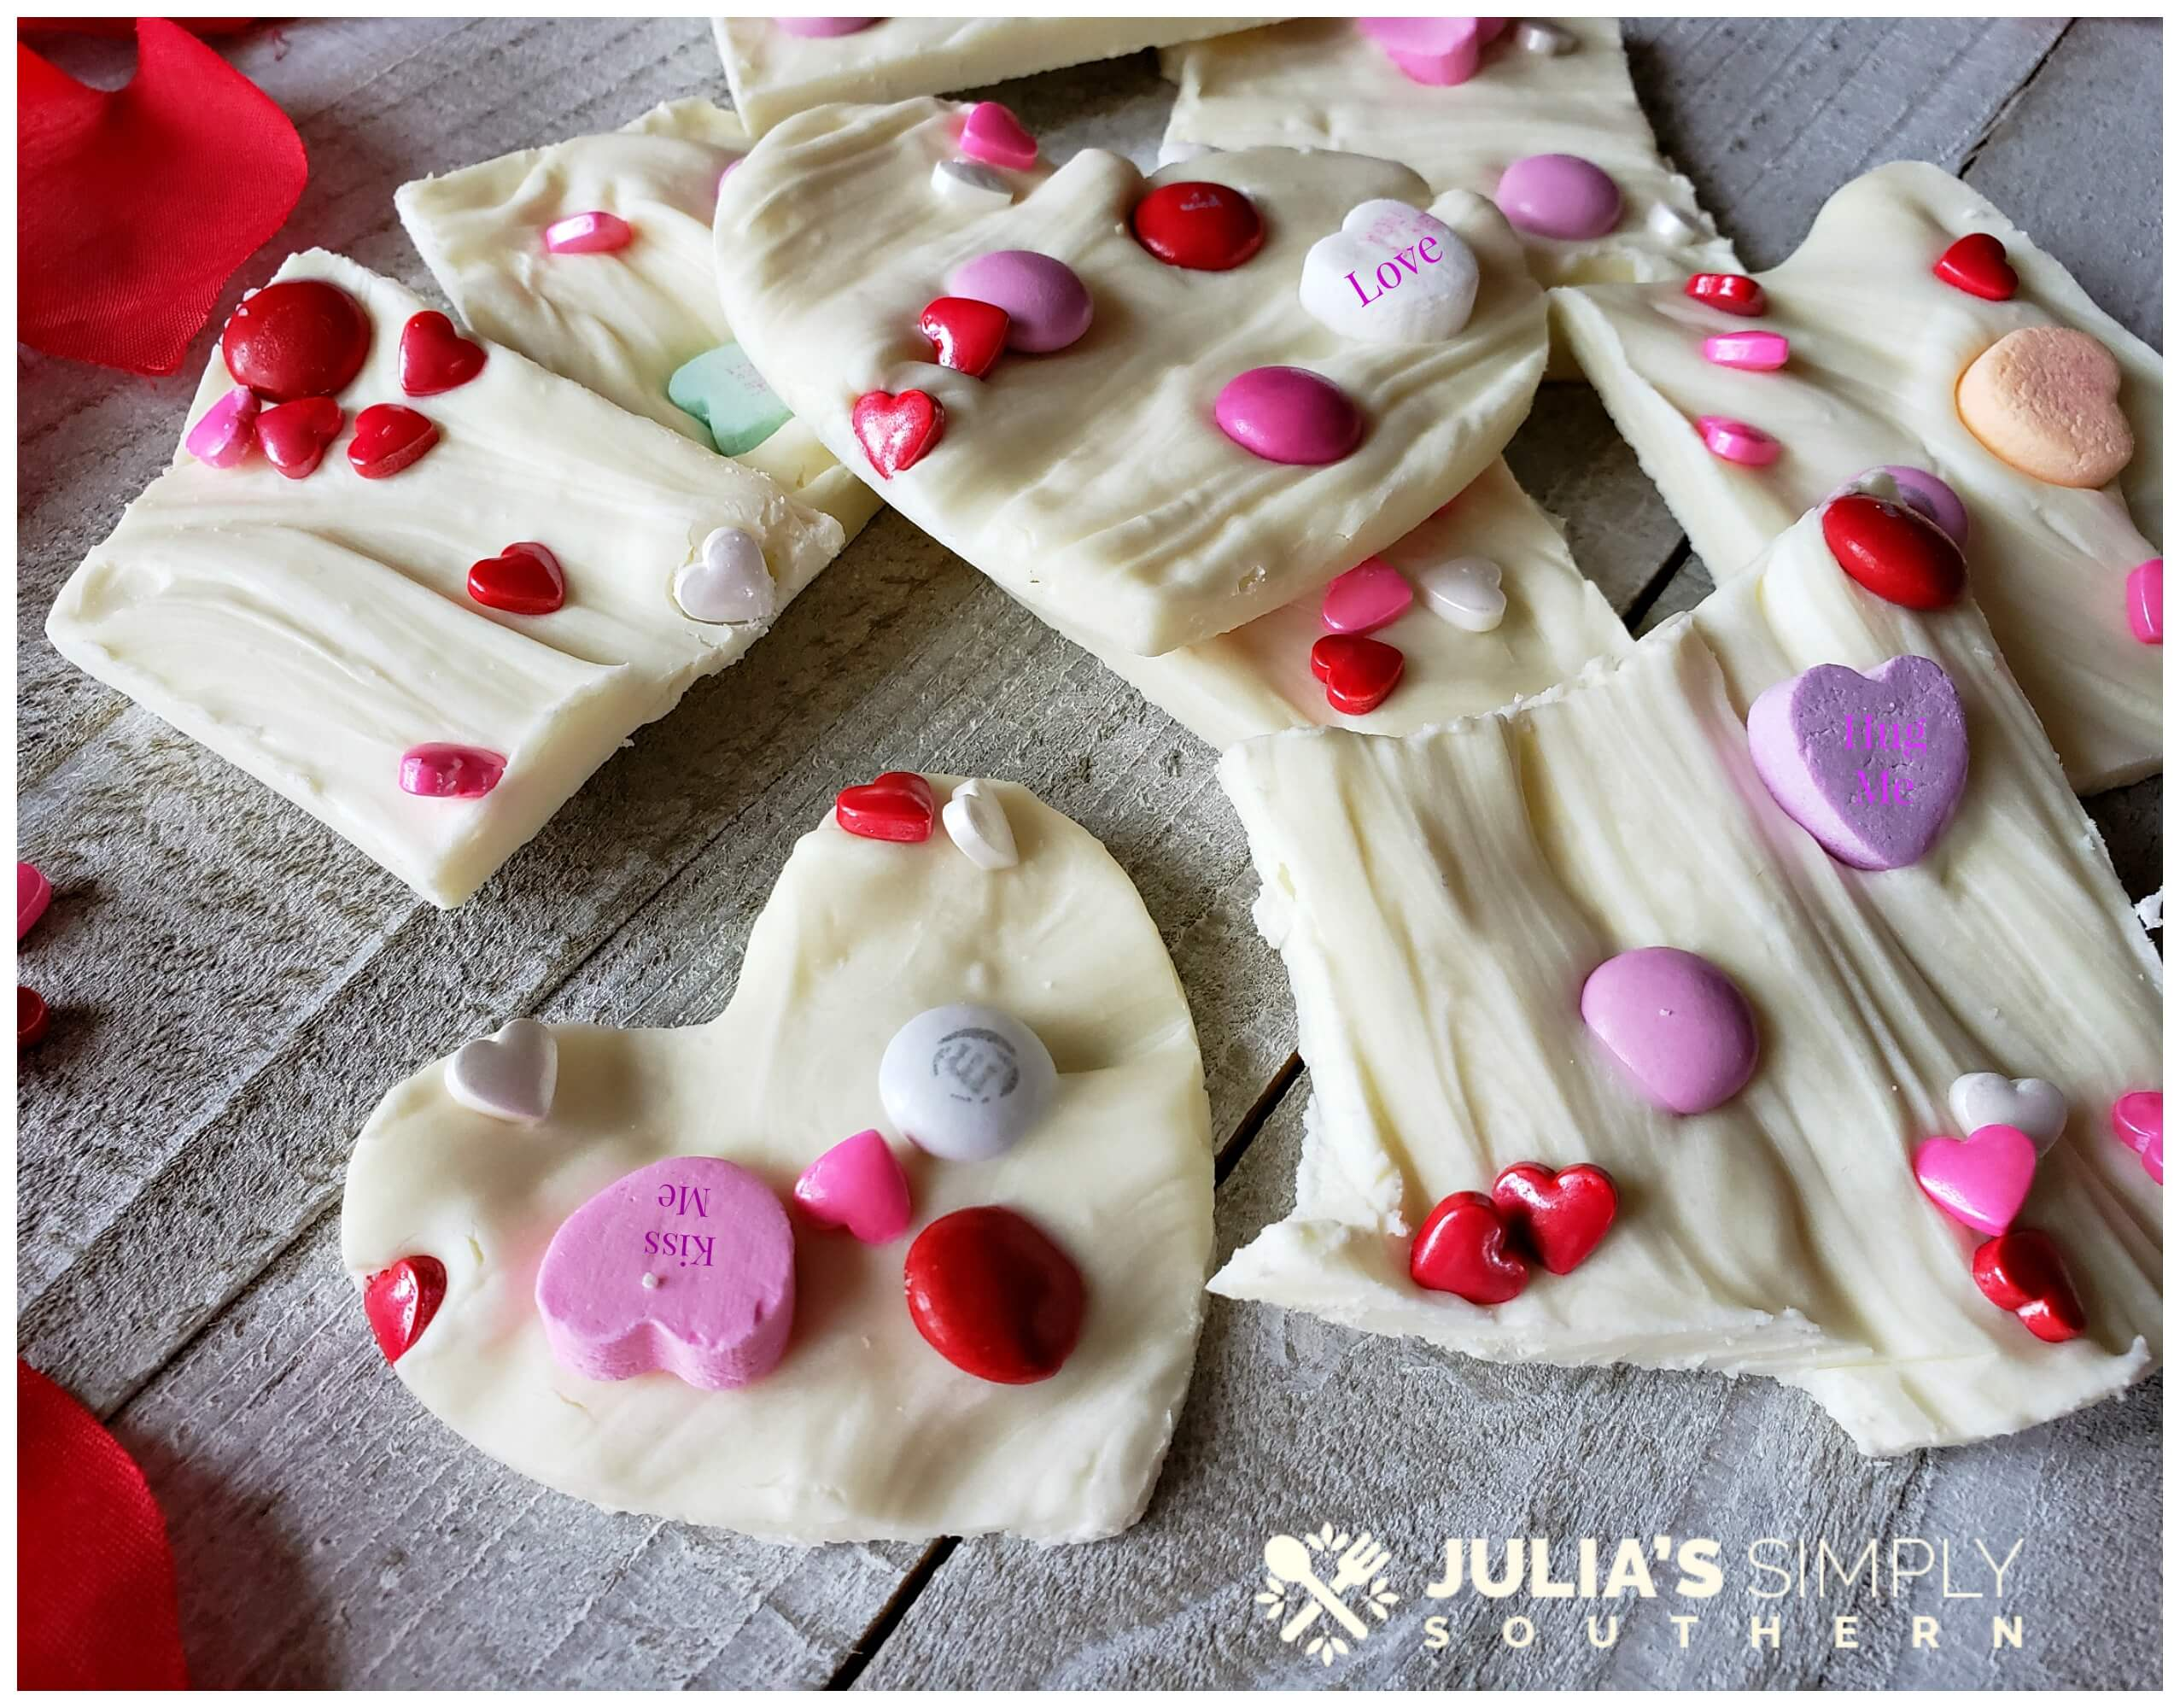 Easy bark candy treats for Valentine's Day